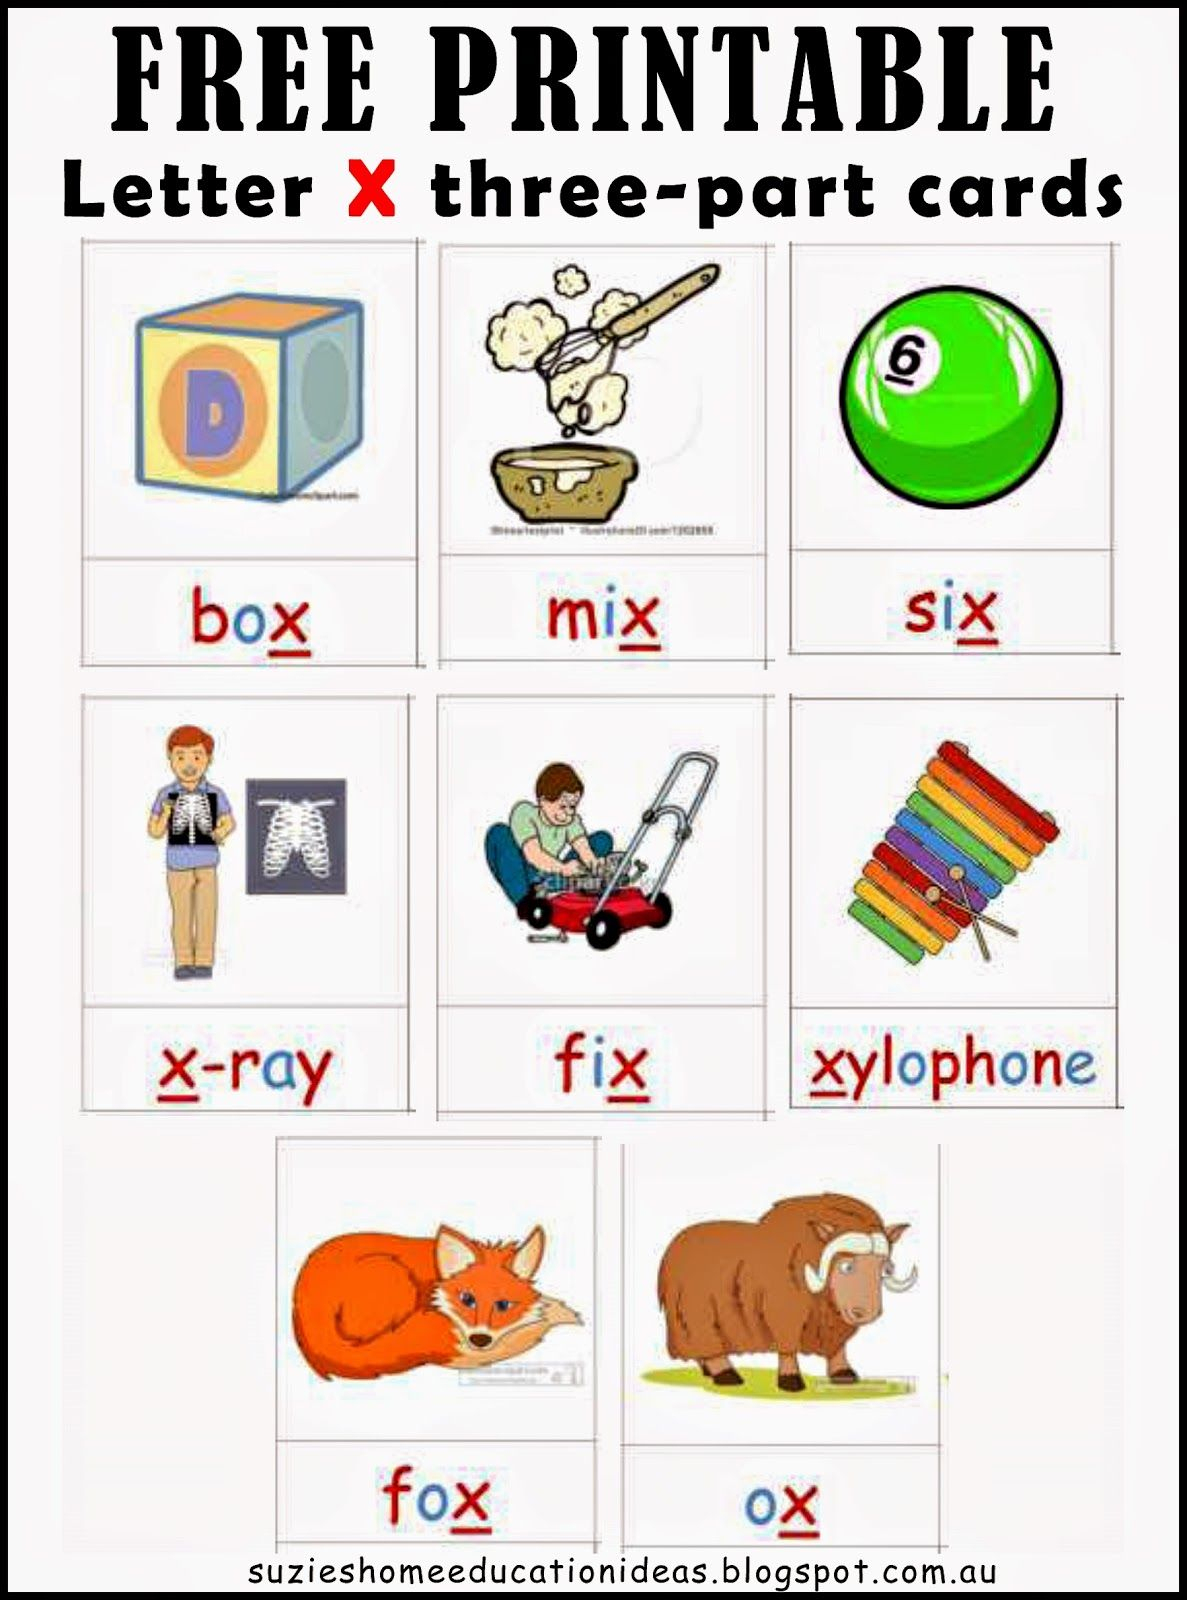 Letter X - Printable Cards And Activity Ideas | Classroom Activities - Free Printable Cause And Effect Picture Cards